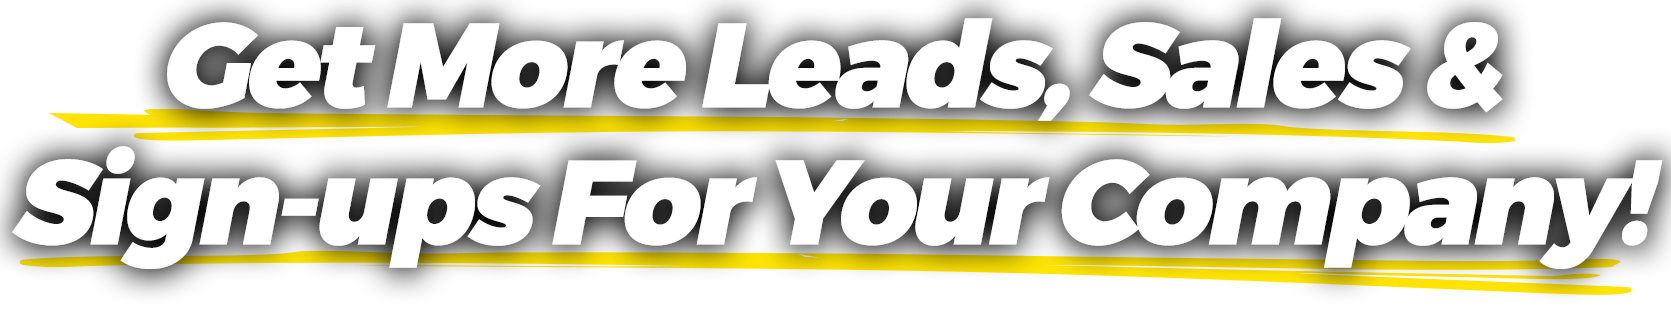 GET MORE LEADS, SALES & SIGN-UPS FOR YOUR COMPANY!